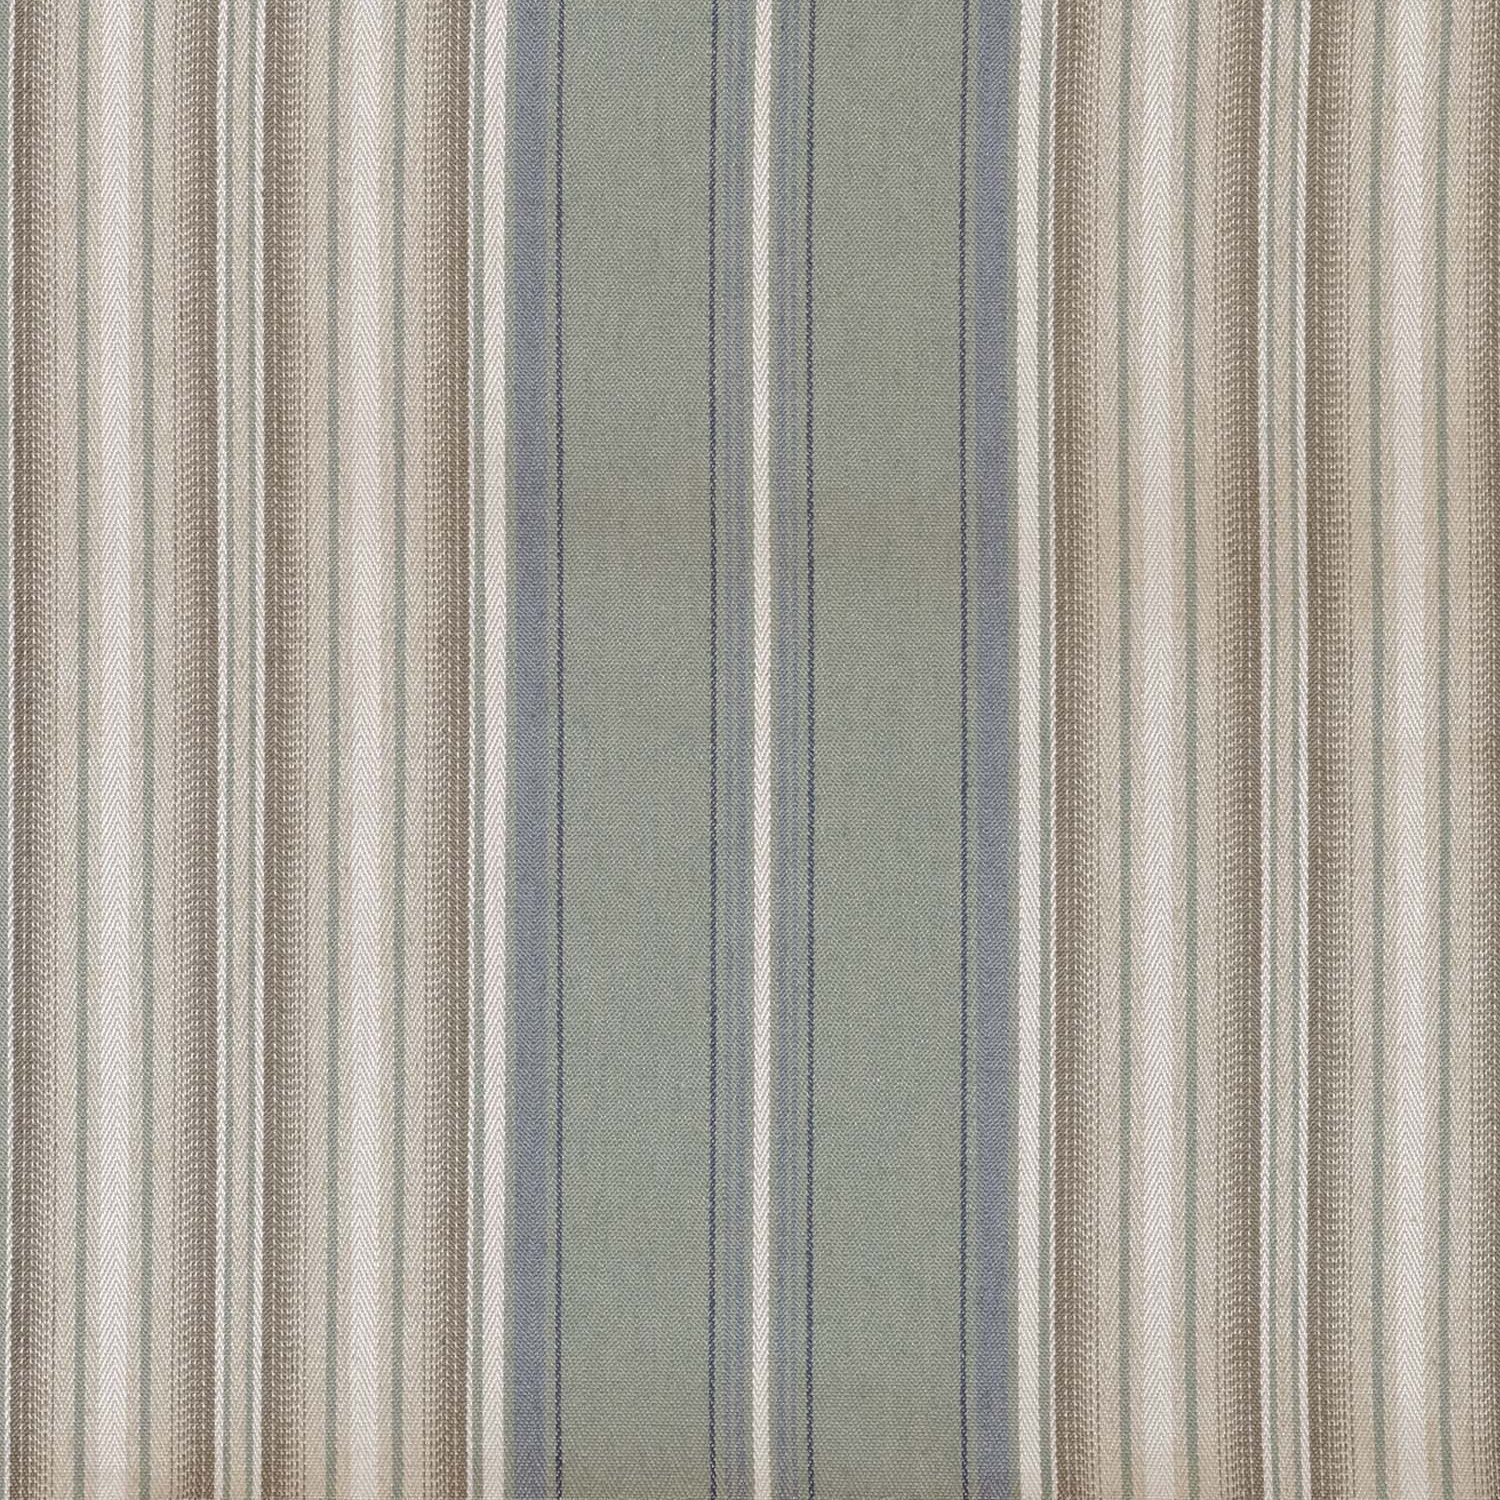 Copy of <p><strong>WINDSOR STRIPE</strong>aqua/blue 4900-04<a href=/the-winthorp-collection/windsor-stripe-aqua-blue-4900-04>More →</a></p>